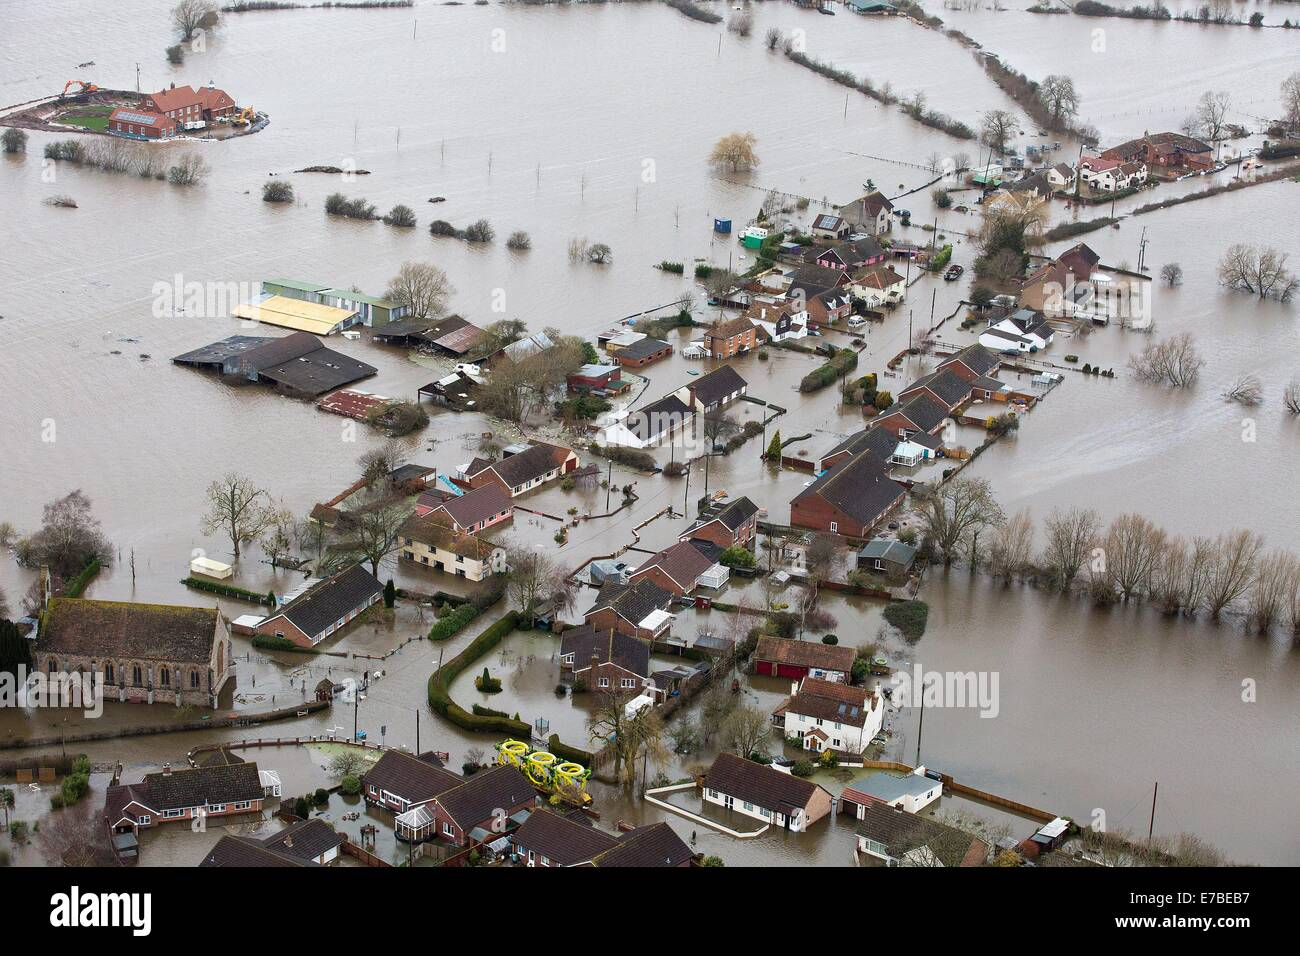 Aerial views of Moorland, on the flooded Somerset Levels. Stock Photo